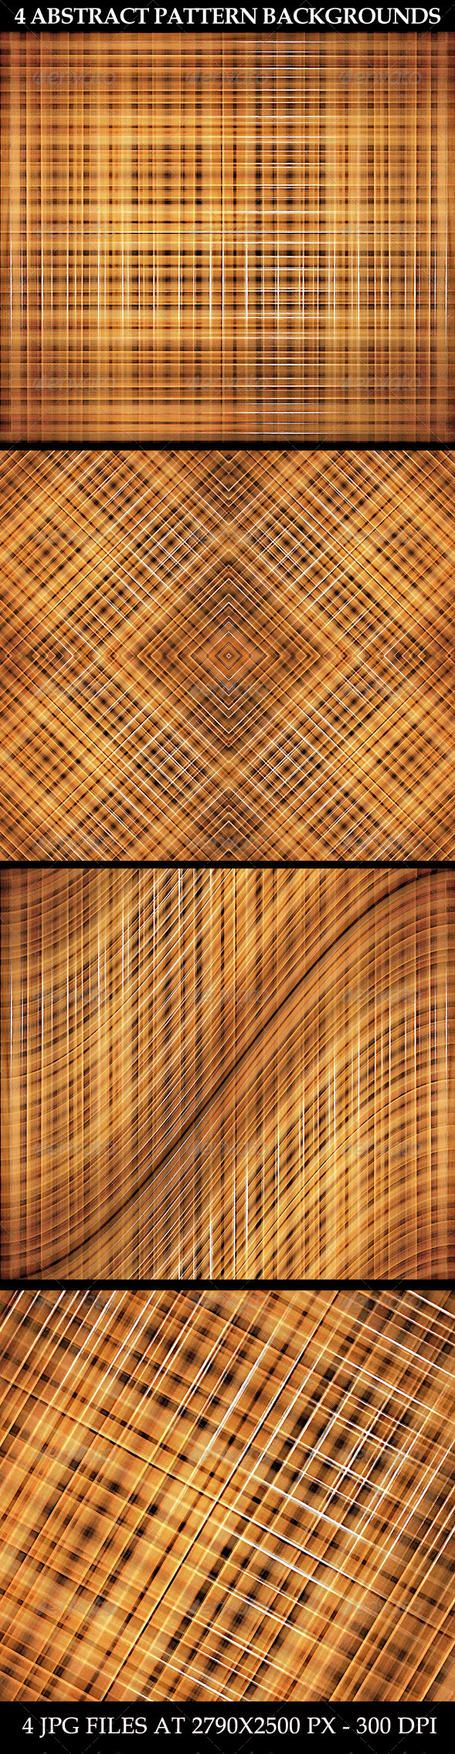 4 Abstract Pattern Backgrounds by danfleites